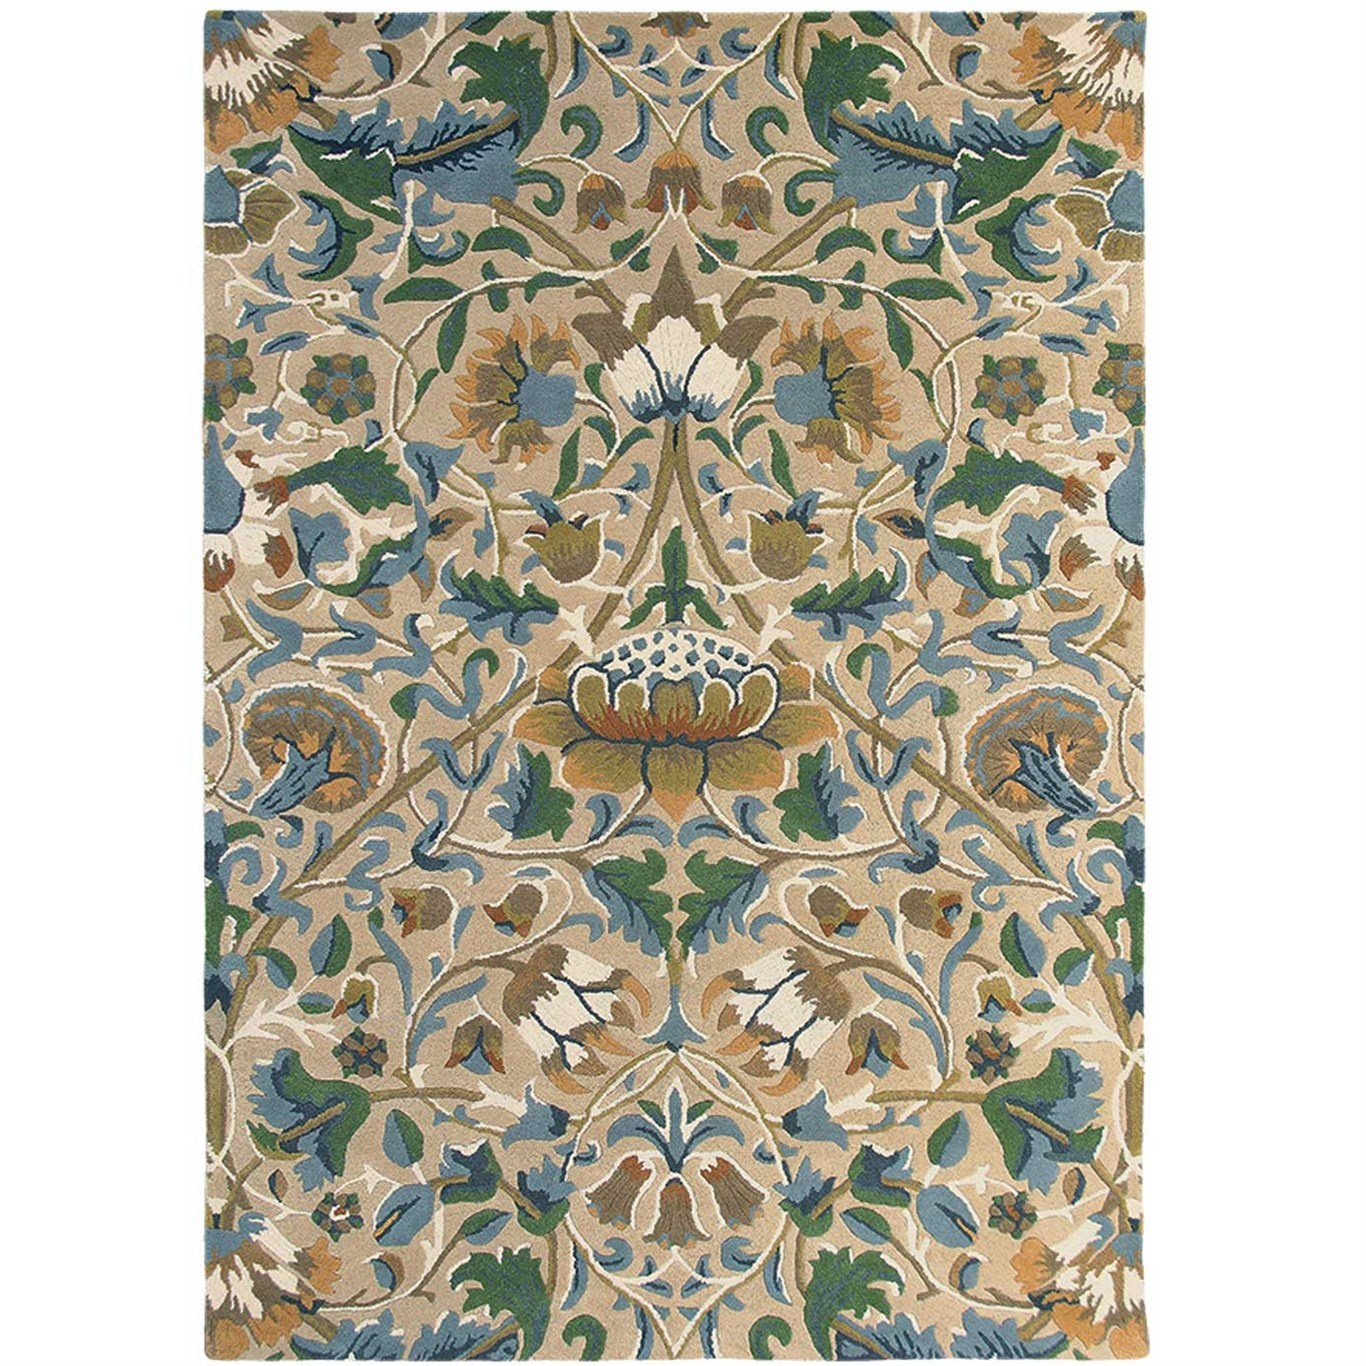 Image of Morris & Co Lodden Manilla Rug 27801